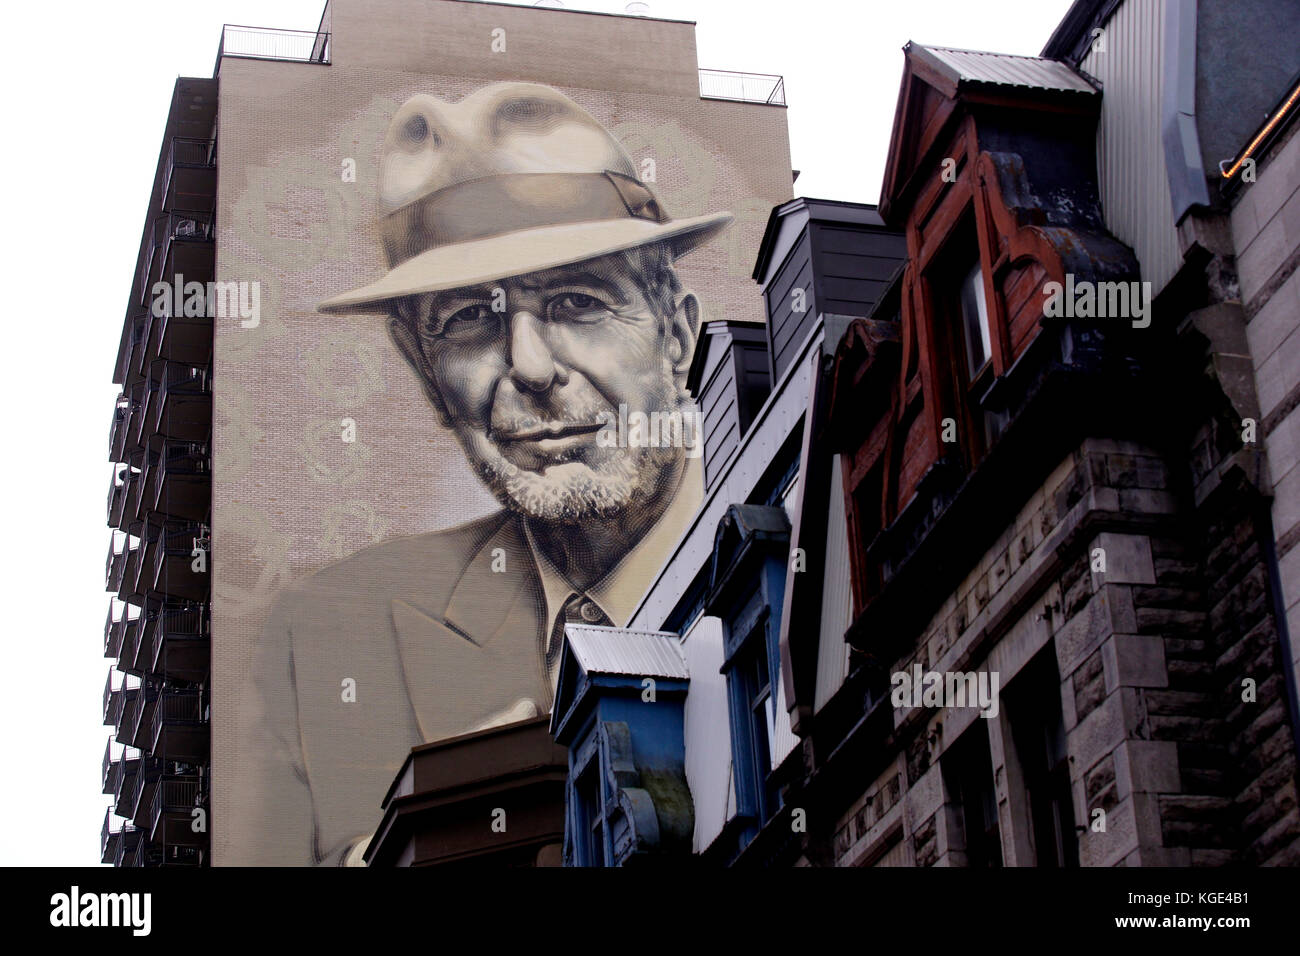 Montreal Canada 7 November 2017 Leonard Cohen Mural Painted On A